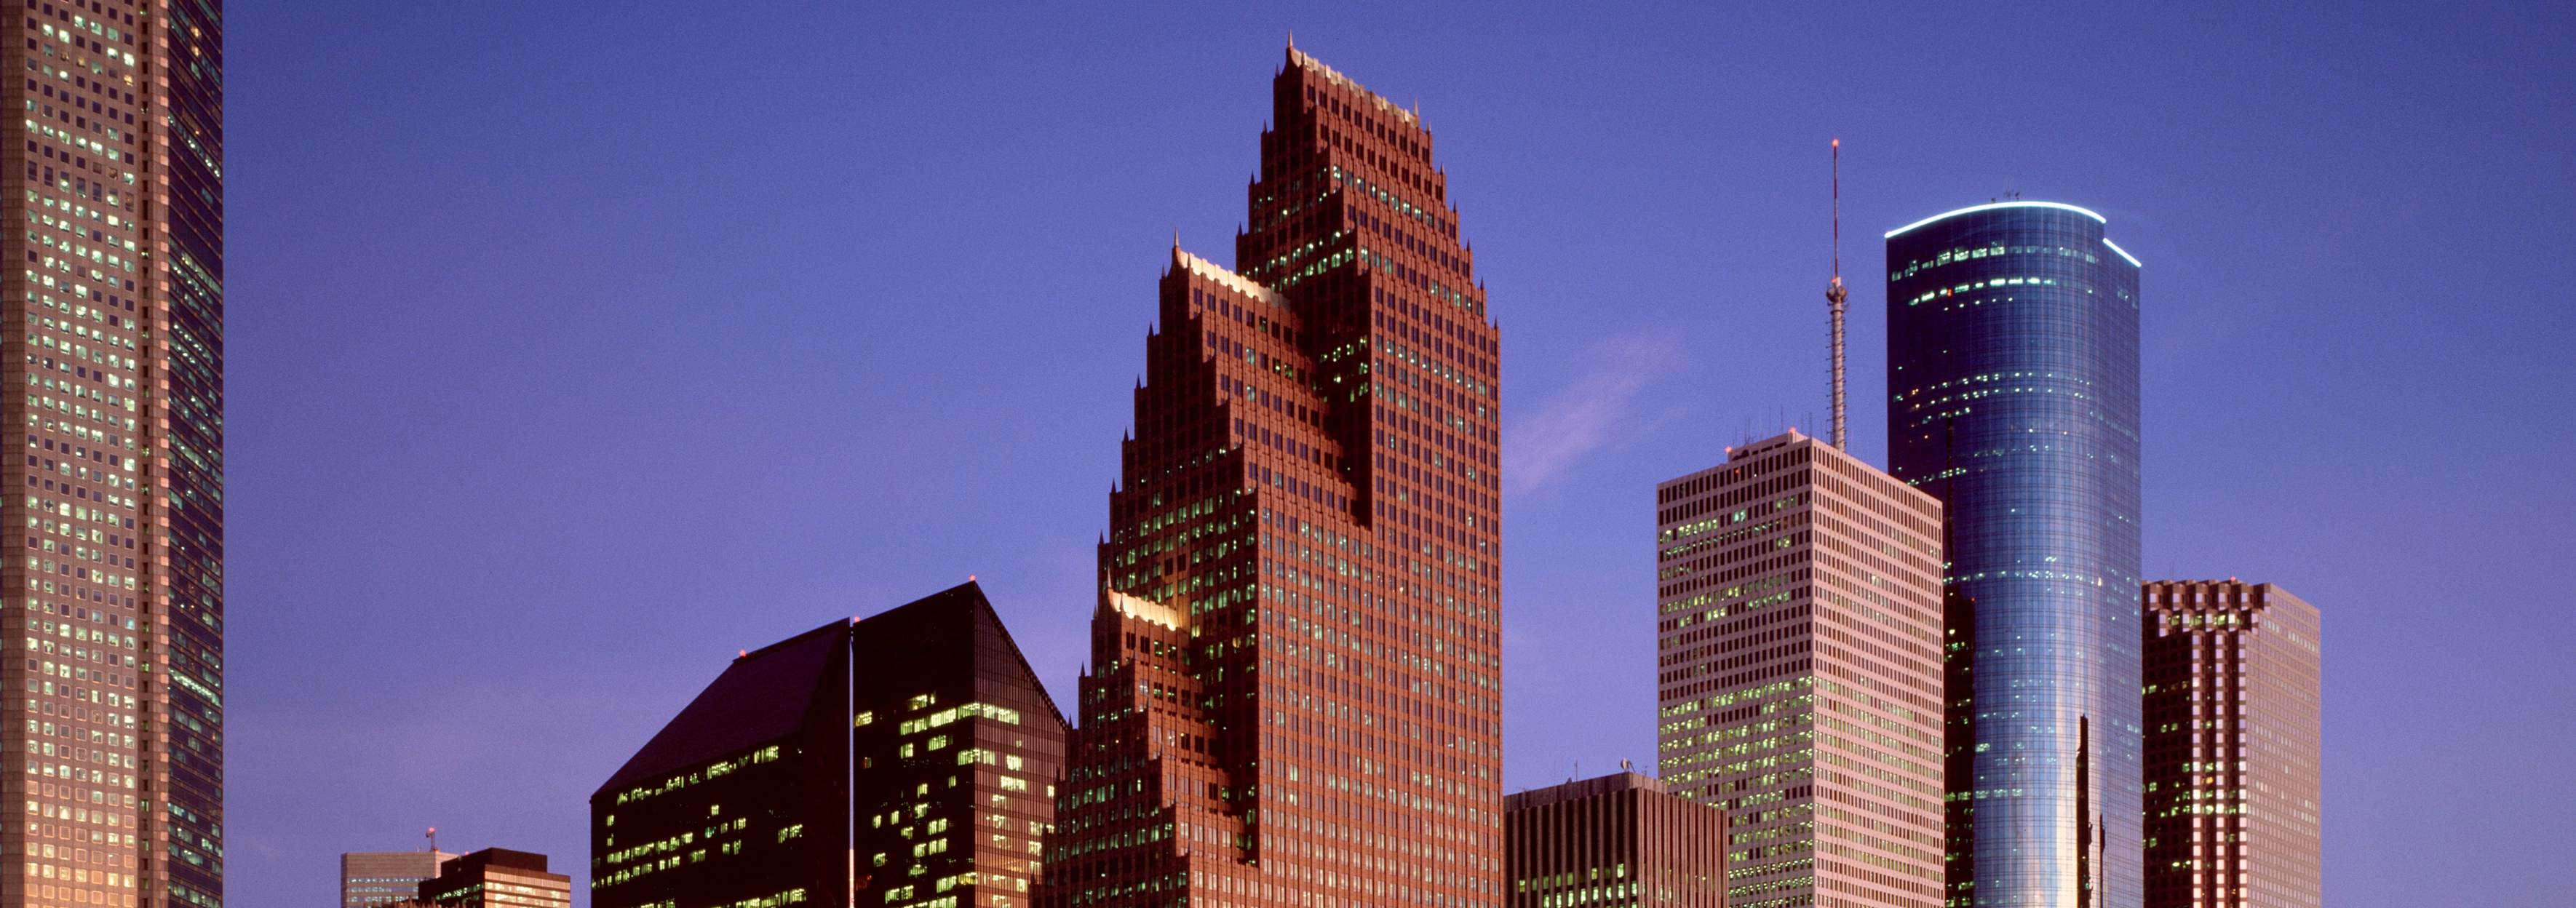 huston_bank-of-america-center-houston-2.jpg